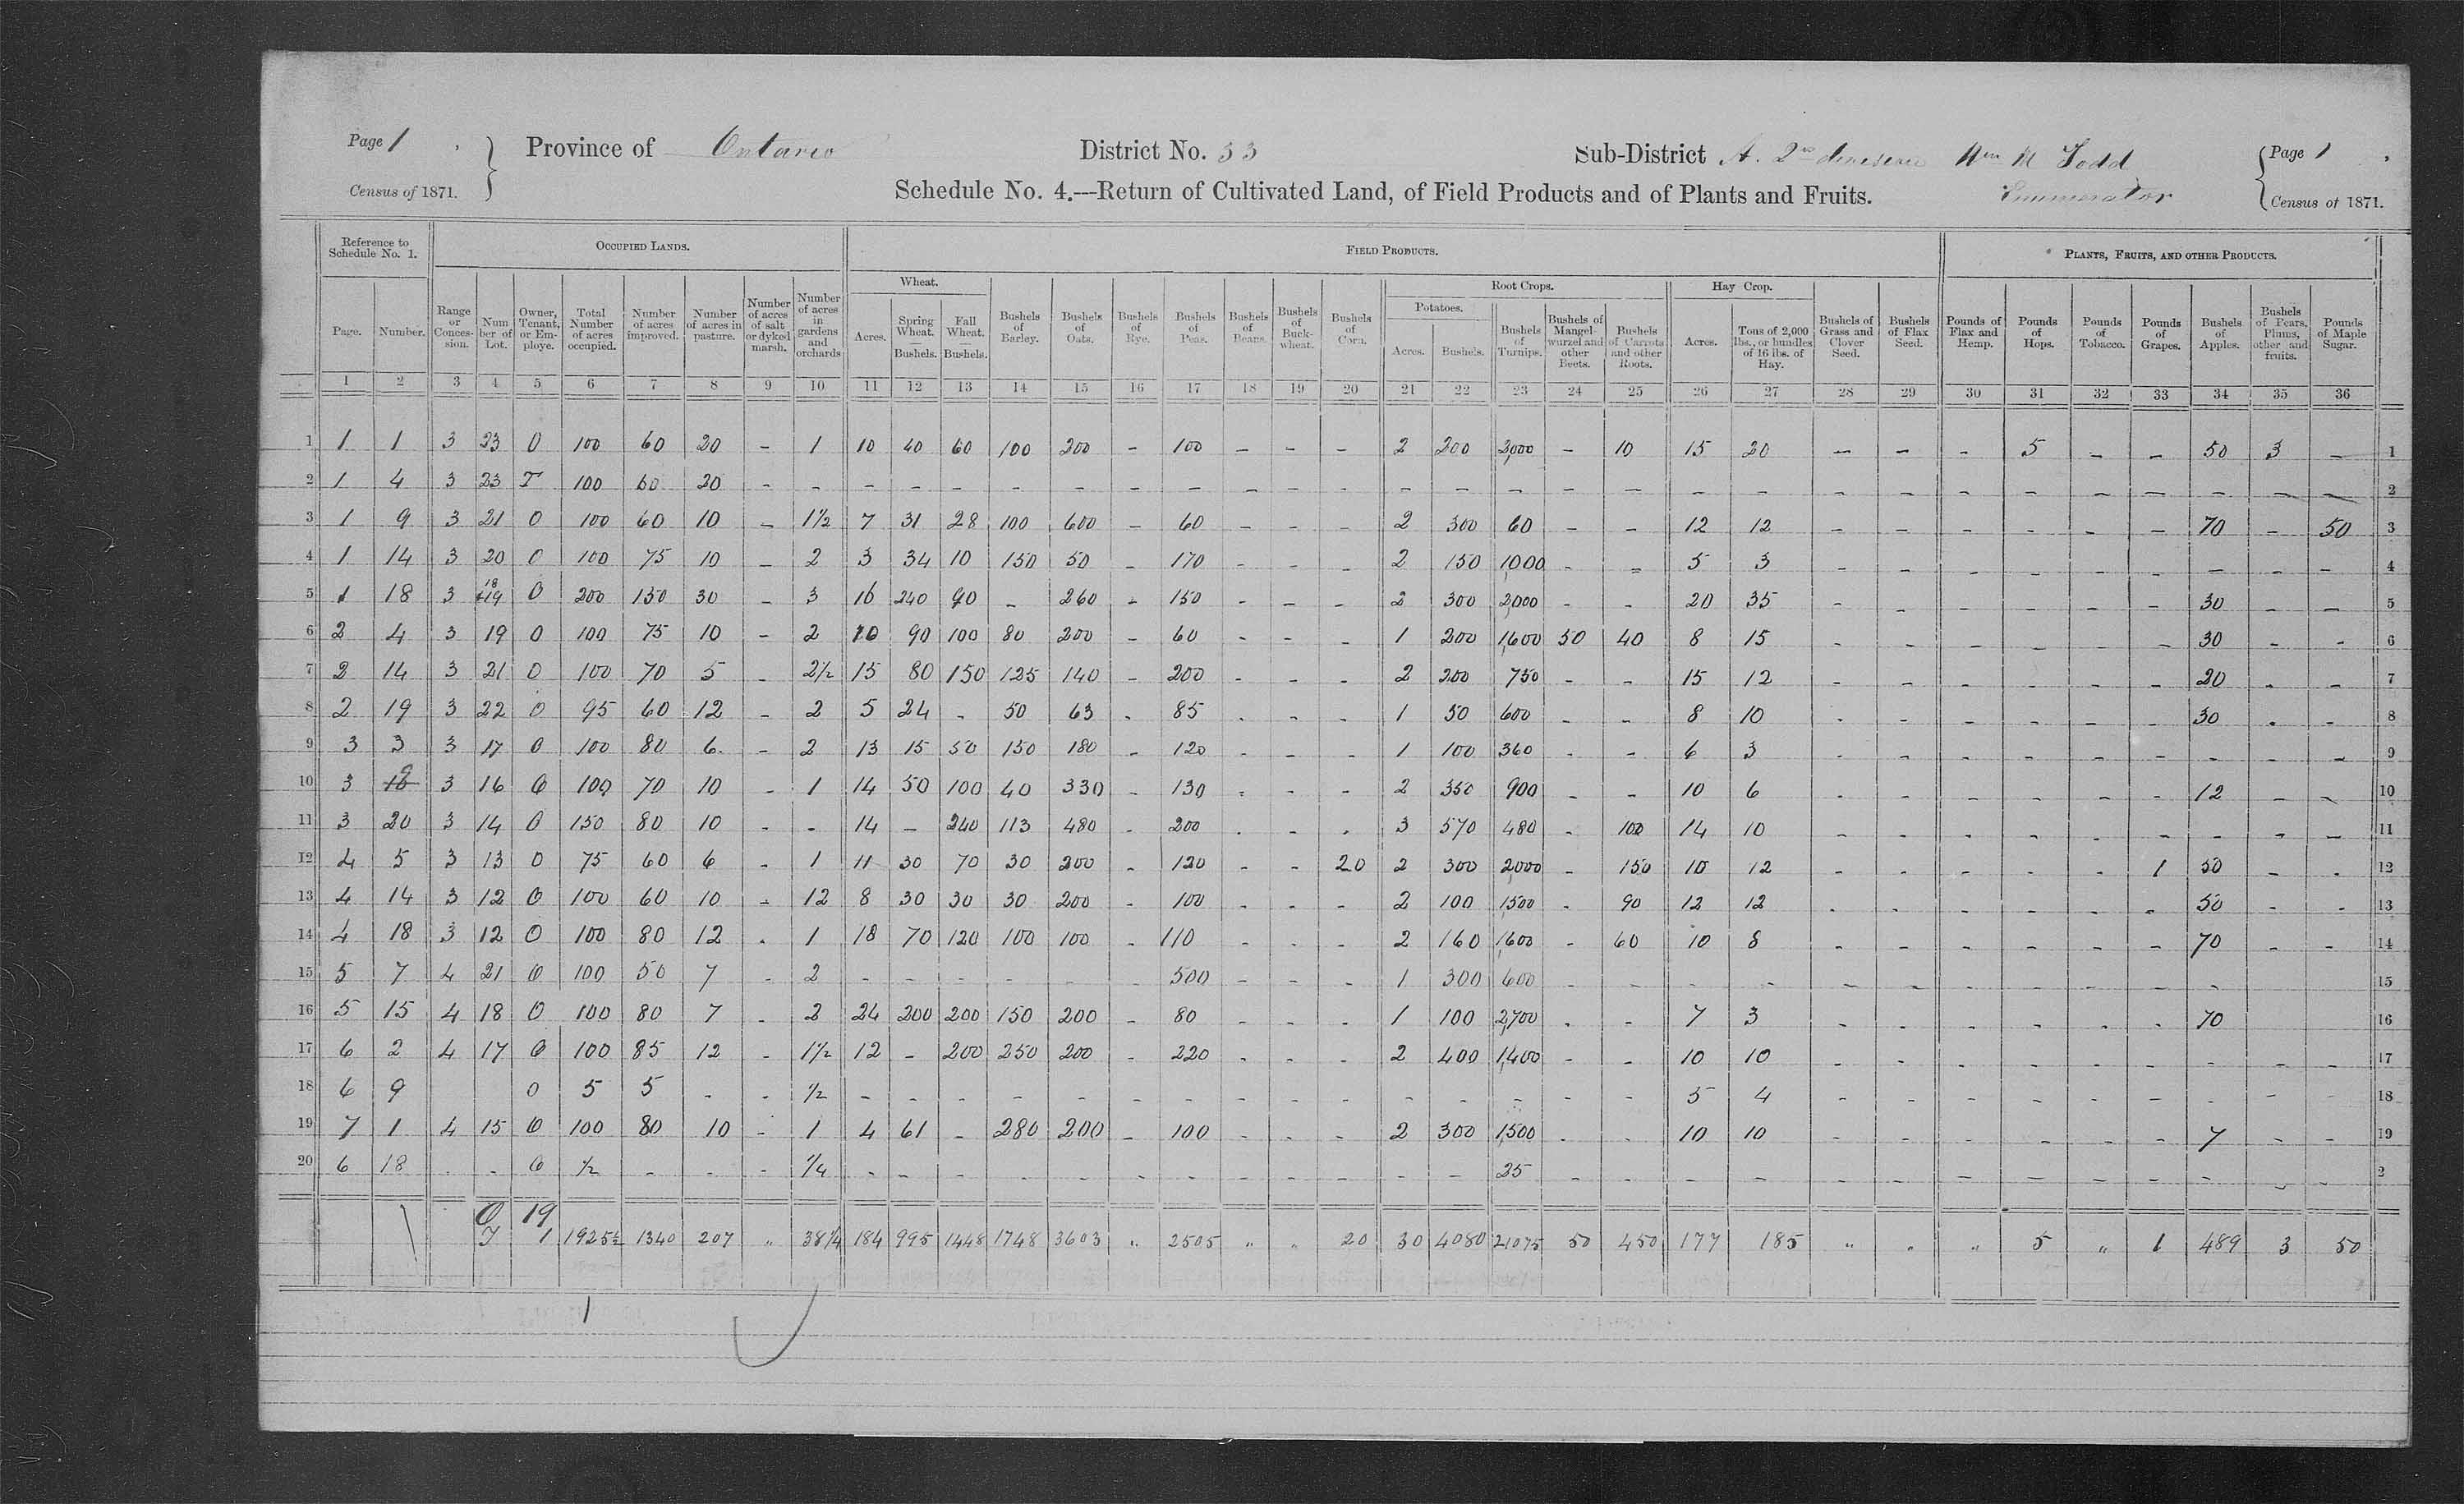 Title: Census of Canada, 1871 - Mikan Number: 142105 - Microform: c-9945